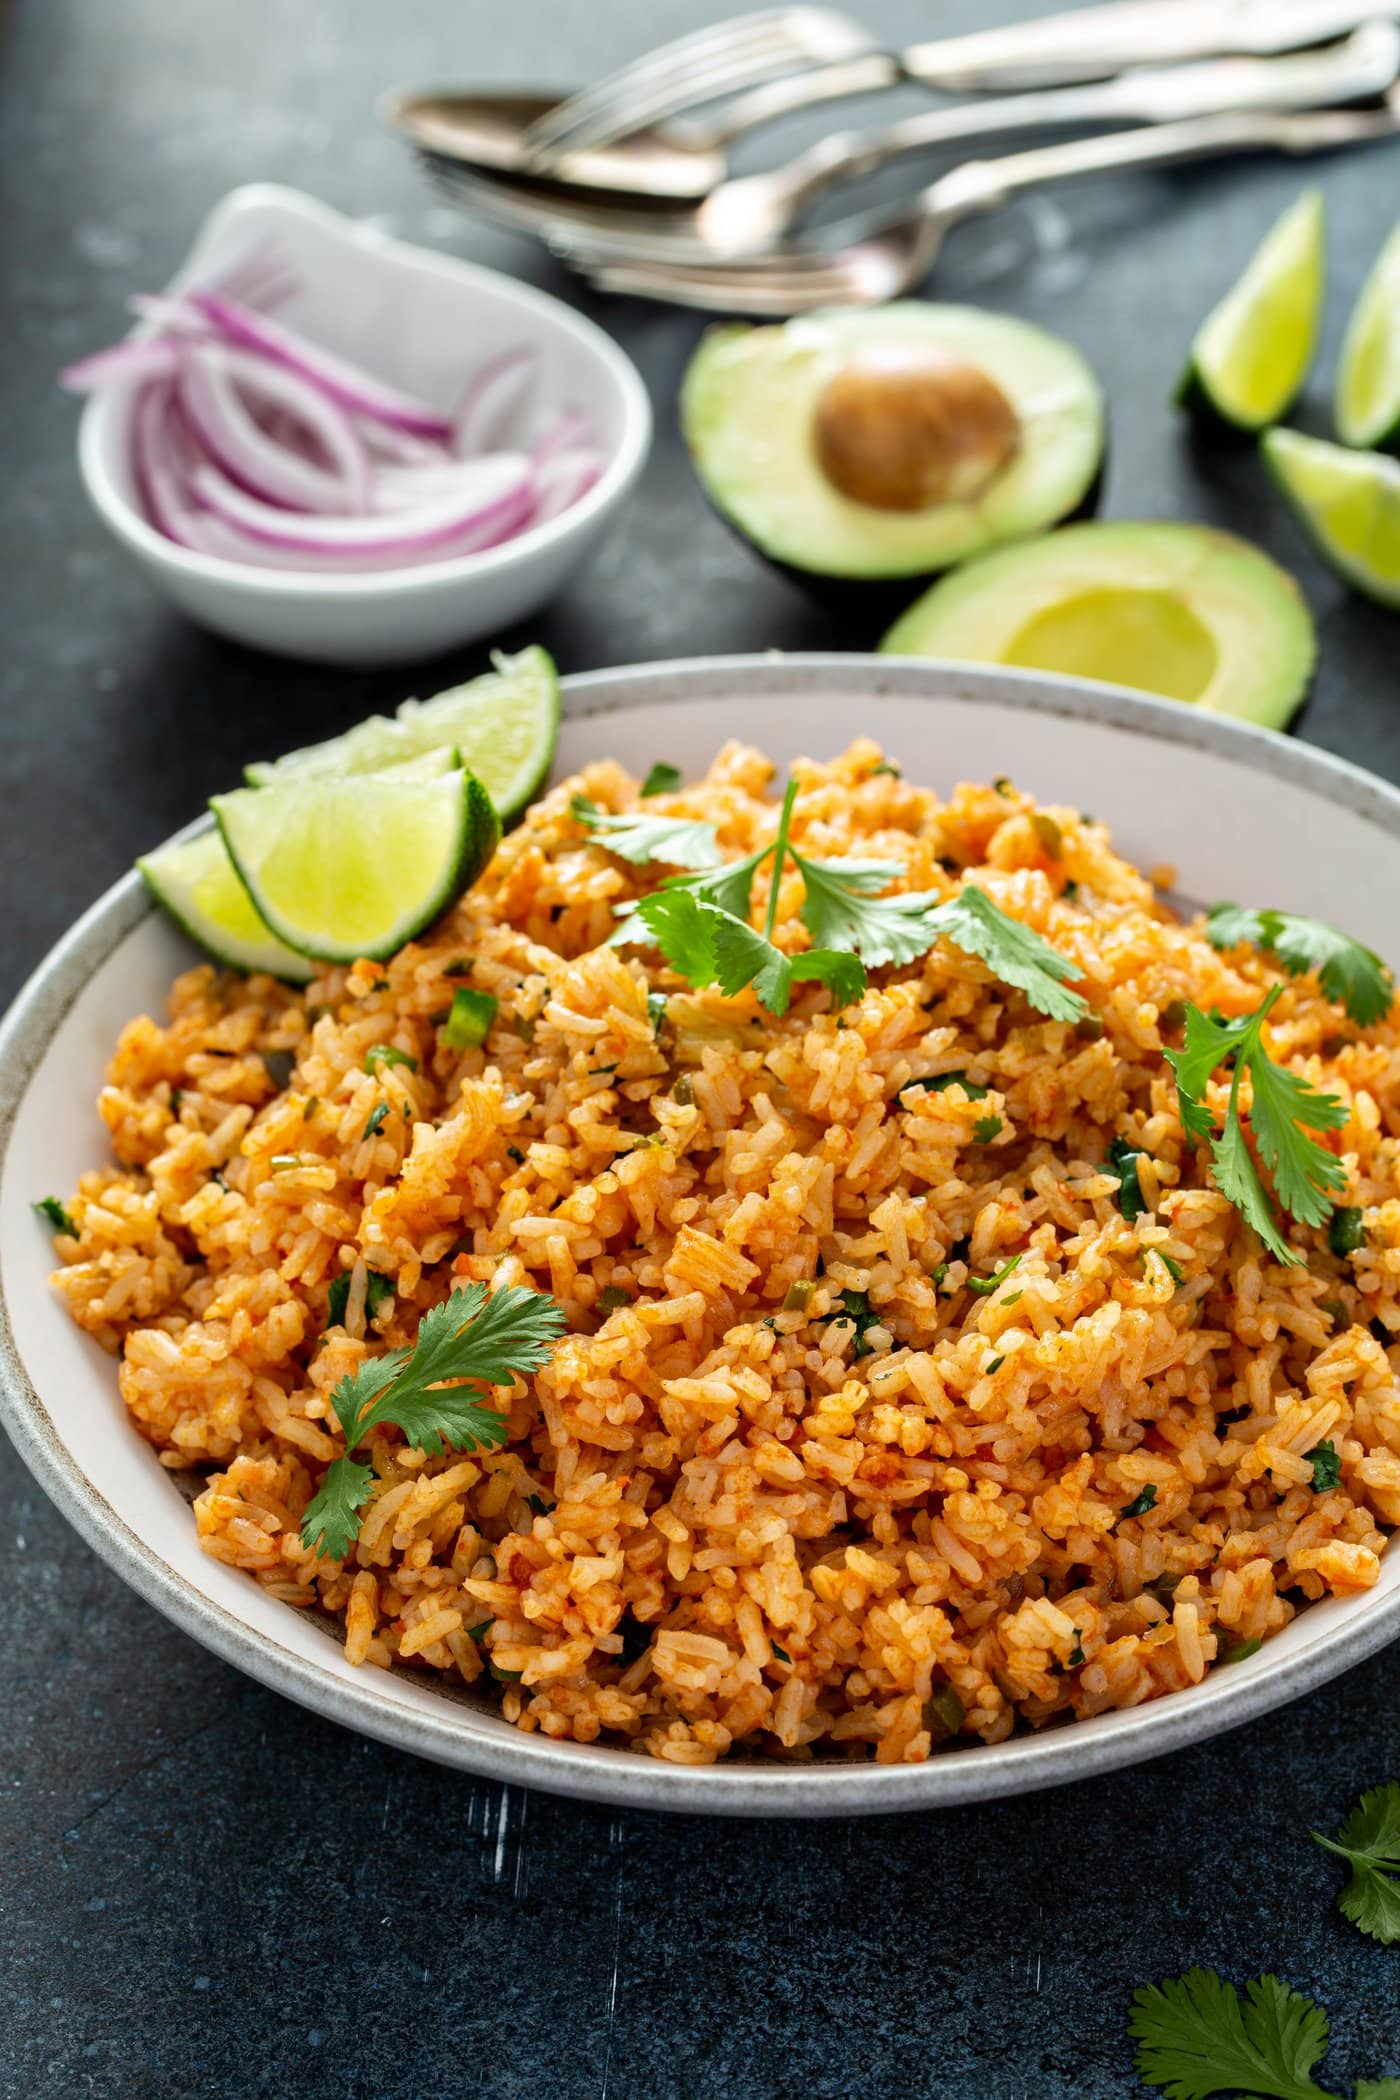 A bowl of Spanish rice with cilantro leaves sprinkled on top. there are three lime wedges on the edge of the bowl and a bowl of sliced red onion and an avocado that has been cut in half in the background.